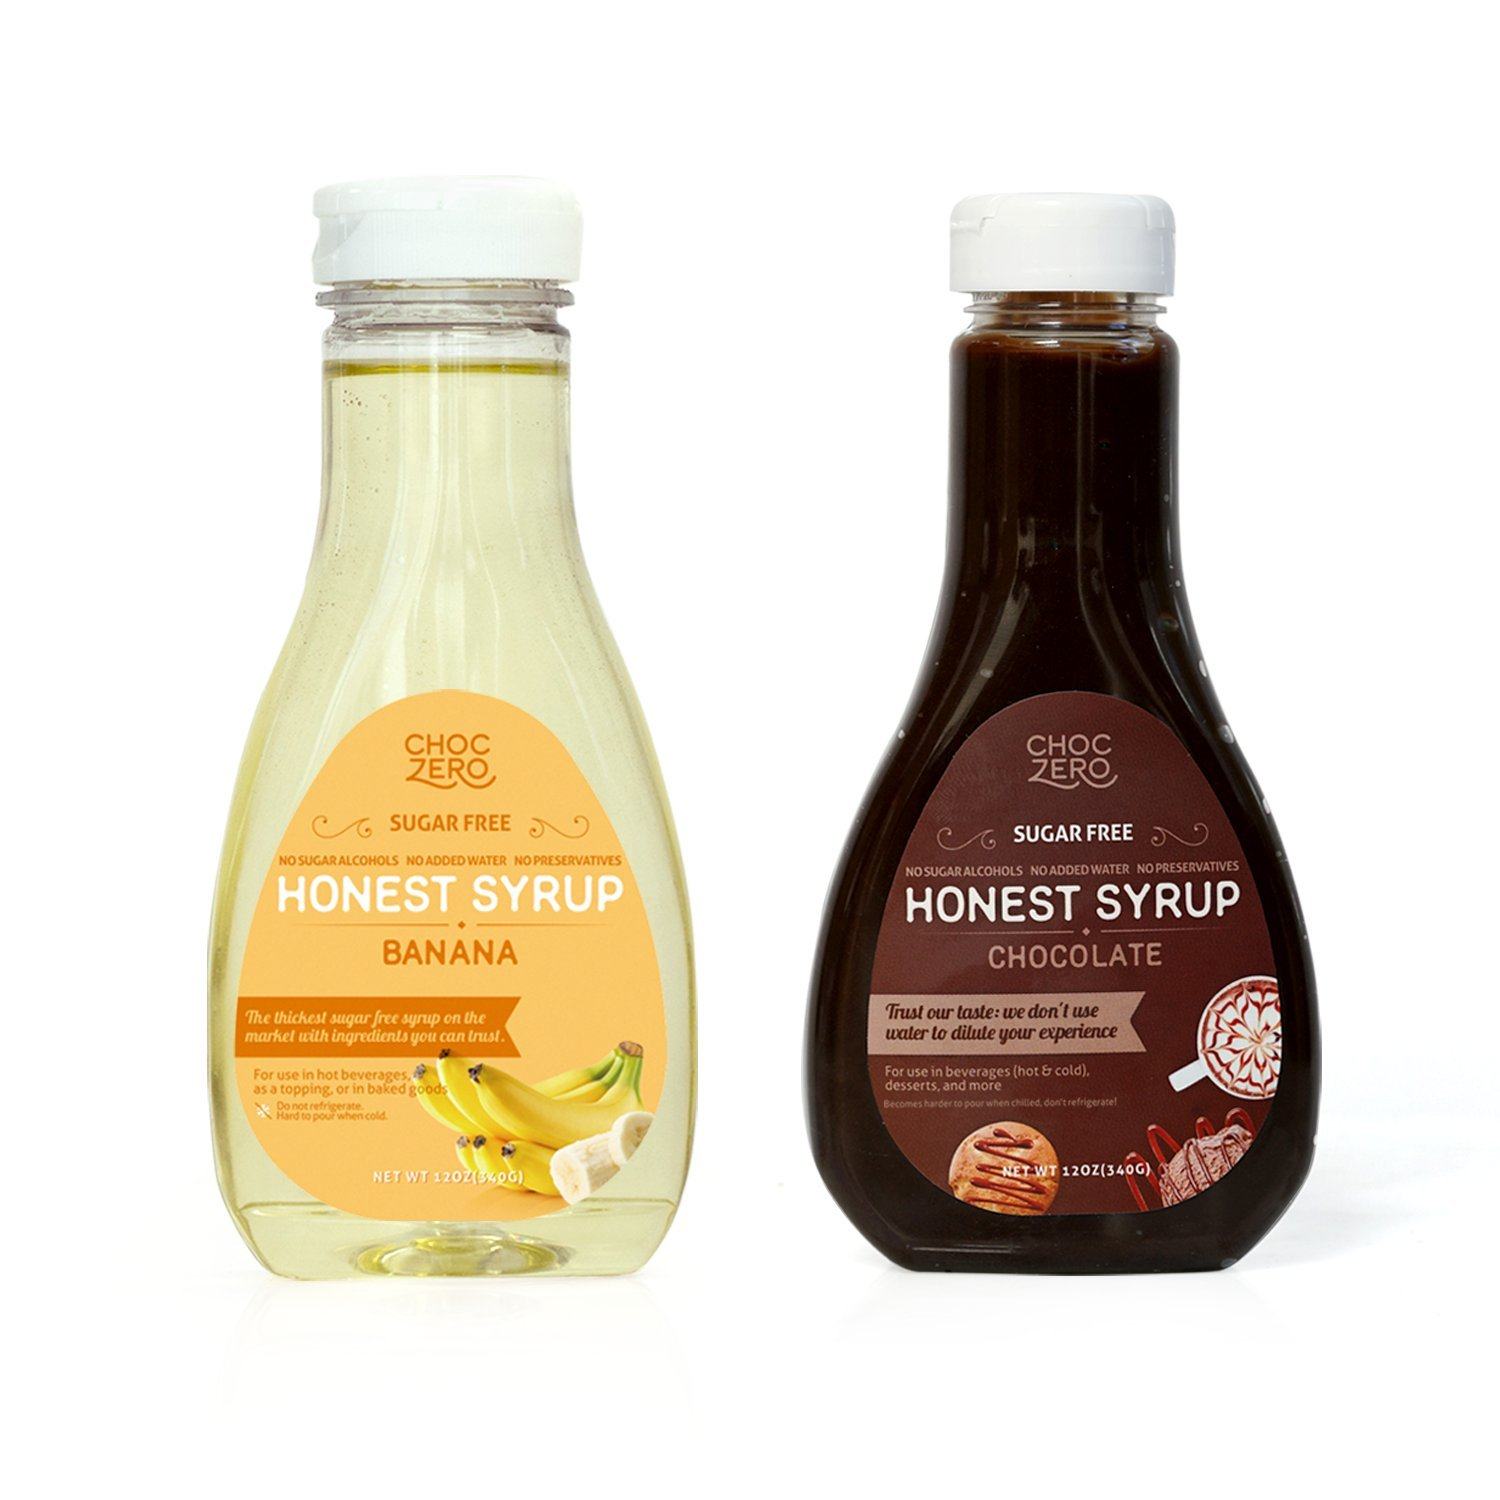 ChocZero's Chocolate Syrup and Banana Syrup. Sugar Free, Low Net Carb, No Preservatives. Gluten Free. No Sugar Alcohols. Good ice cream topping (2 bottles)